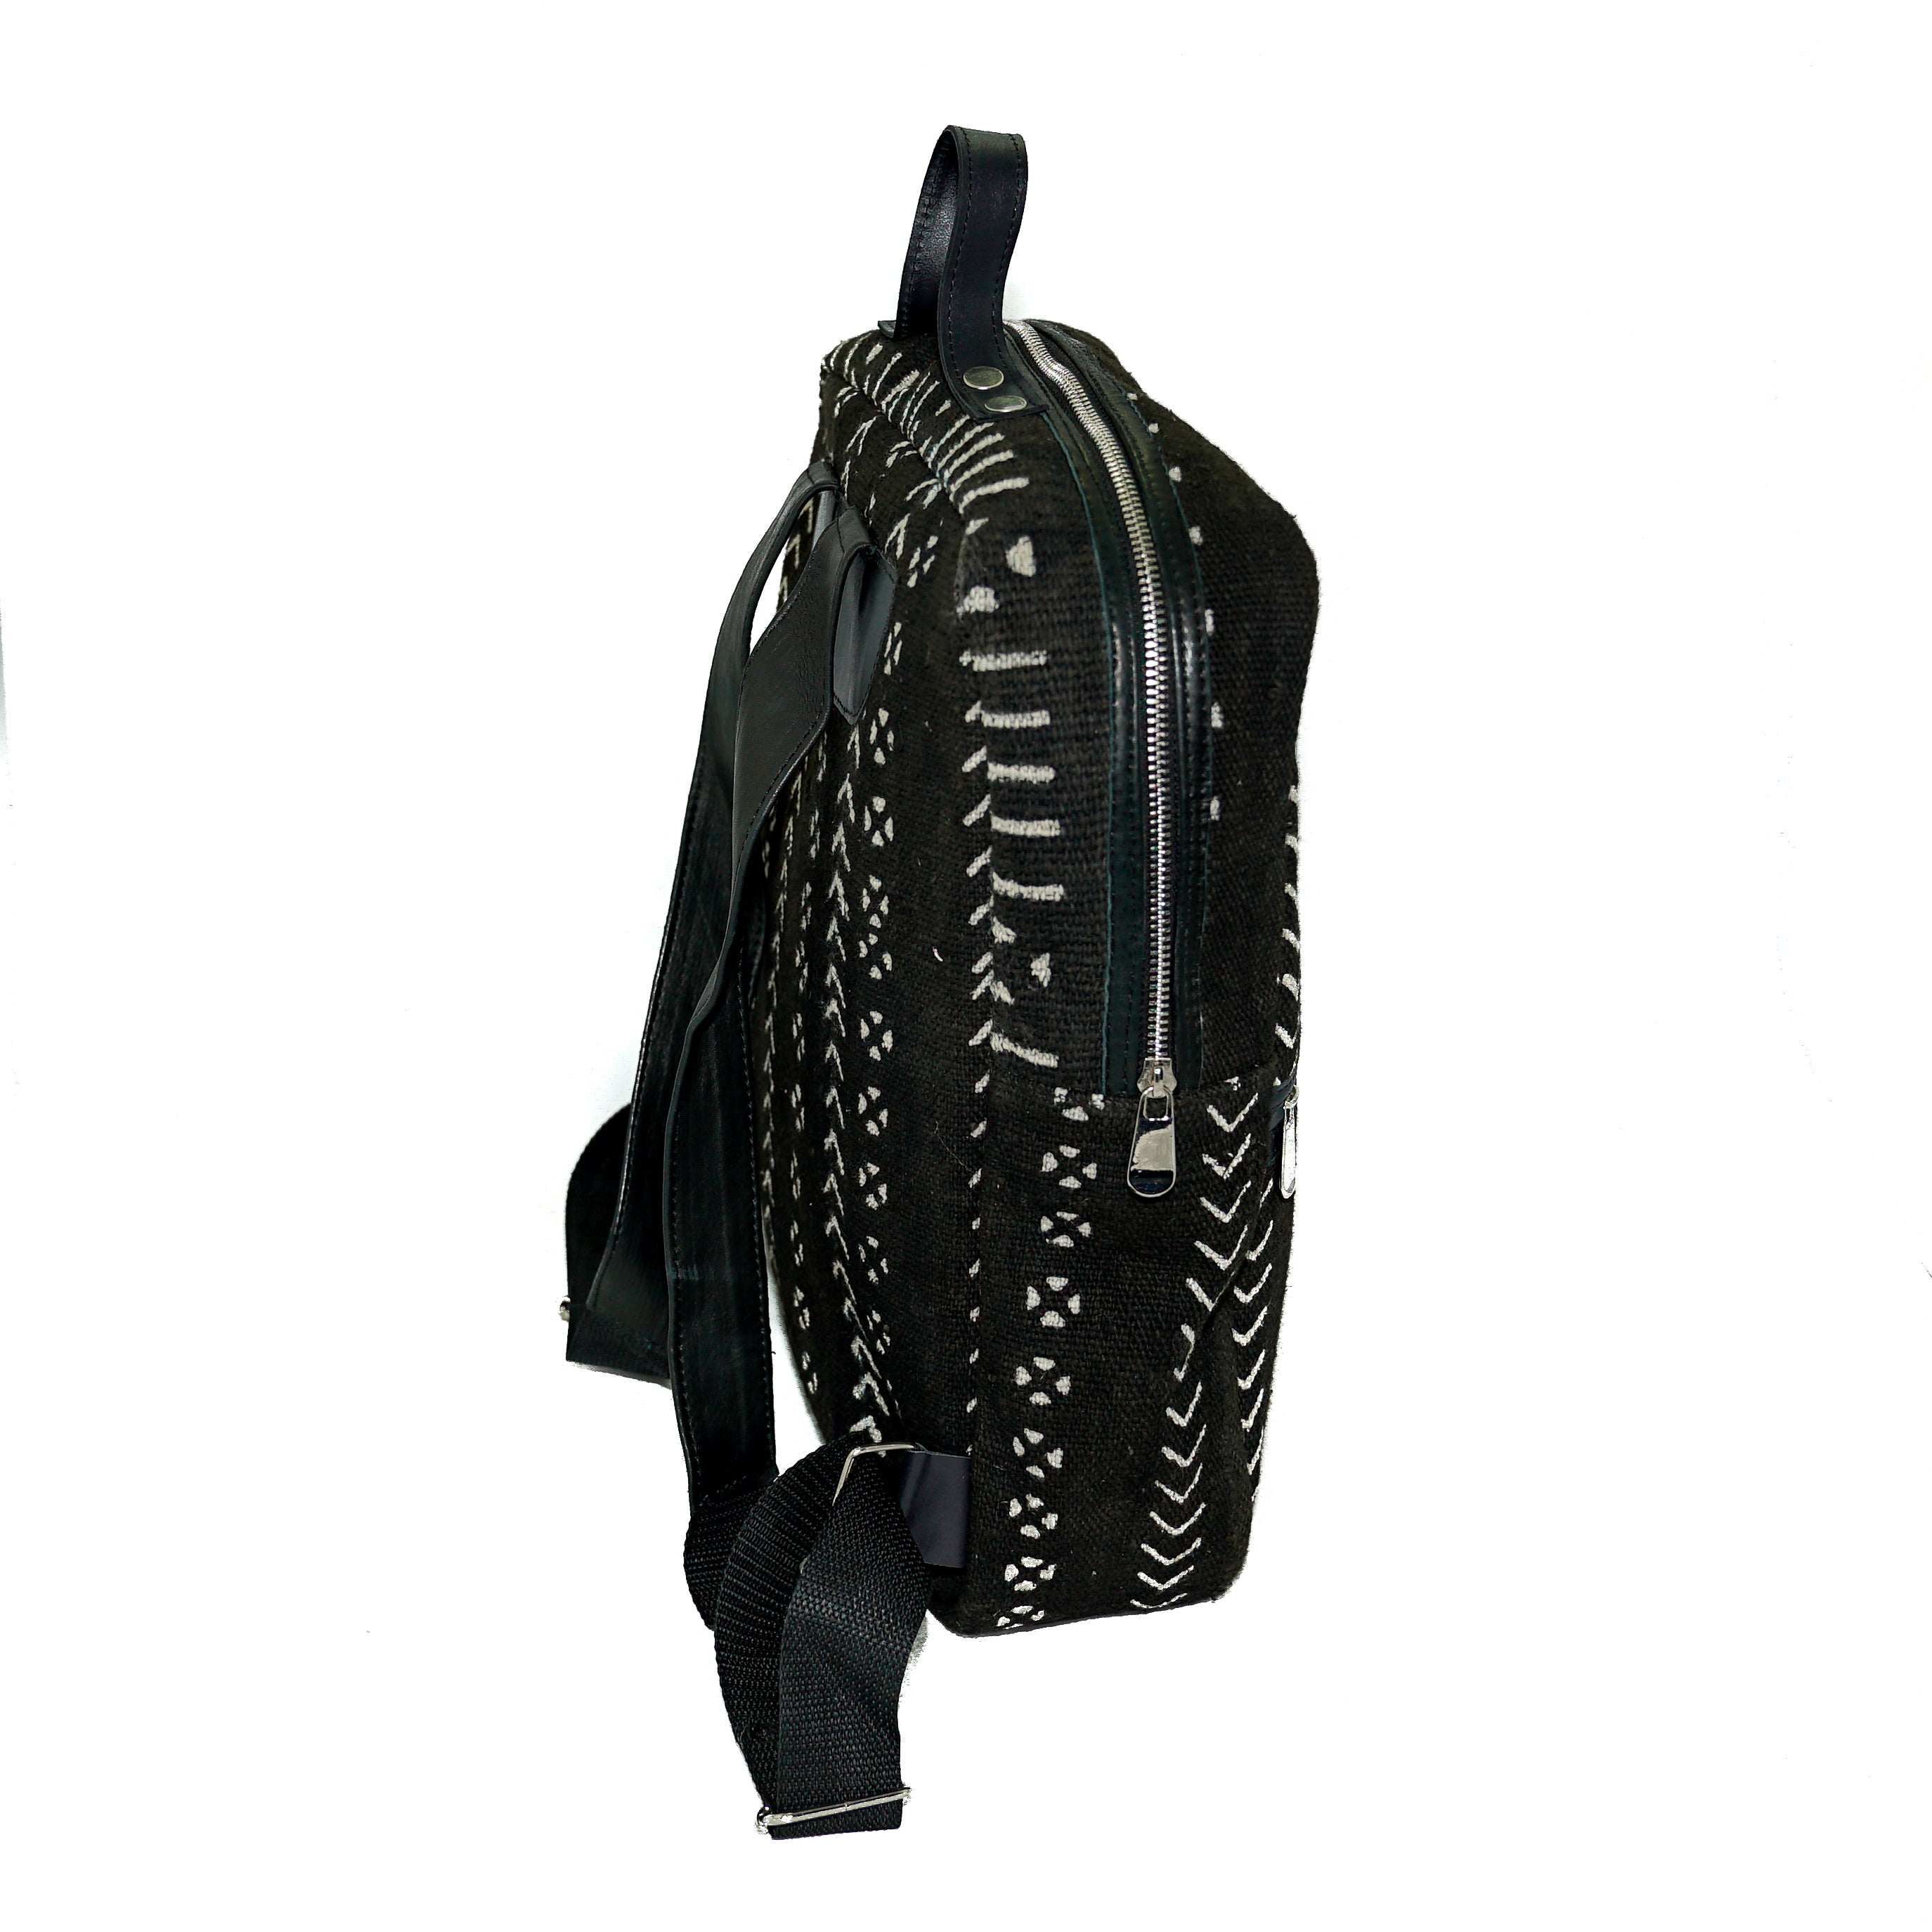 Bakau backpack in black mudcloth with leather trim